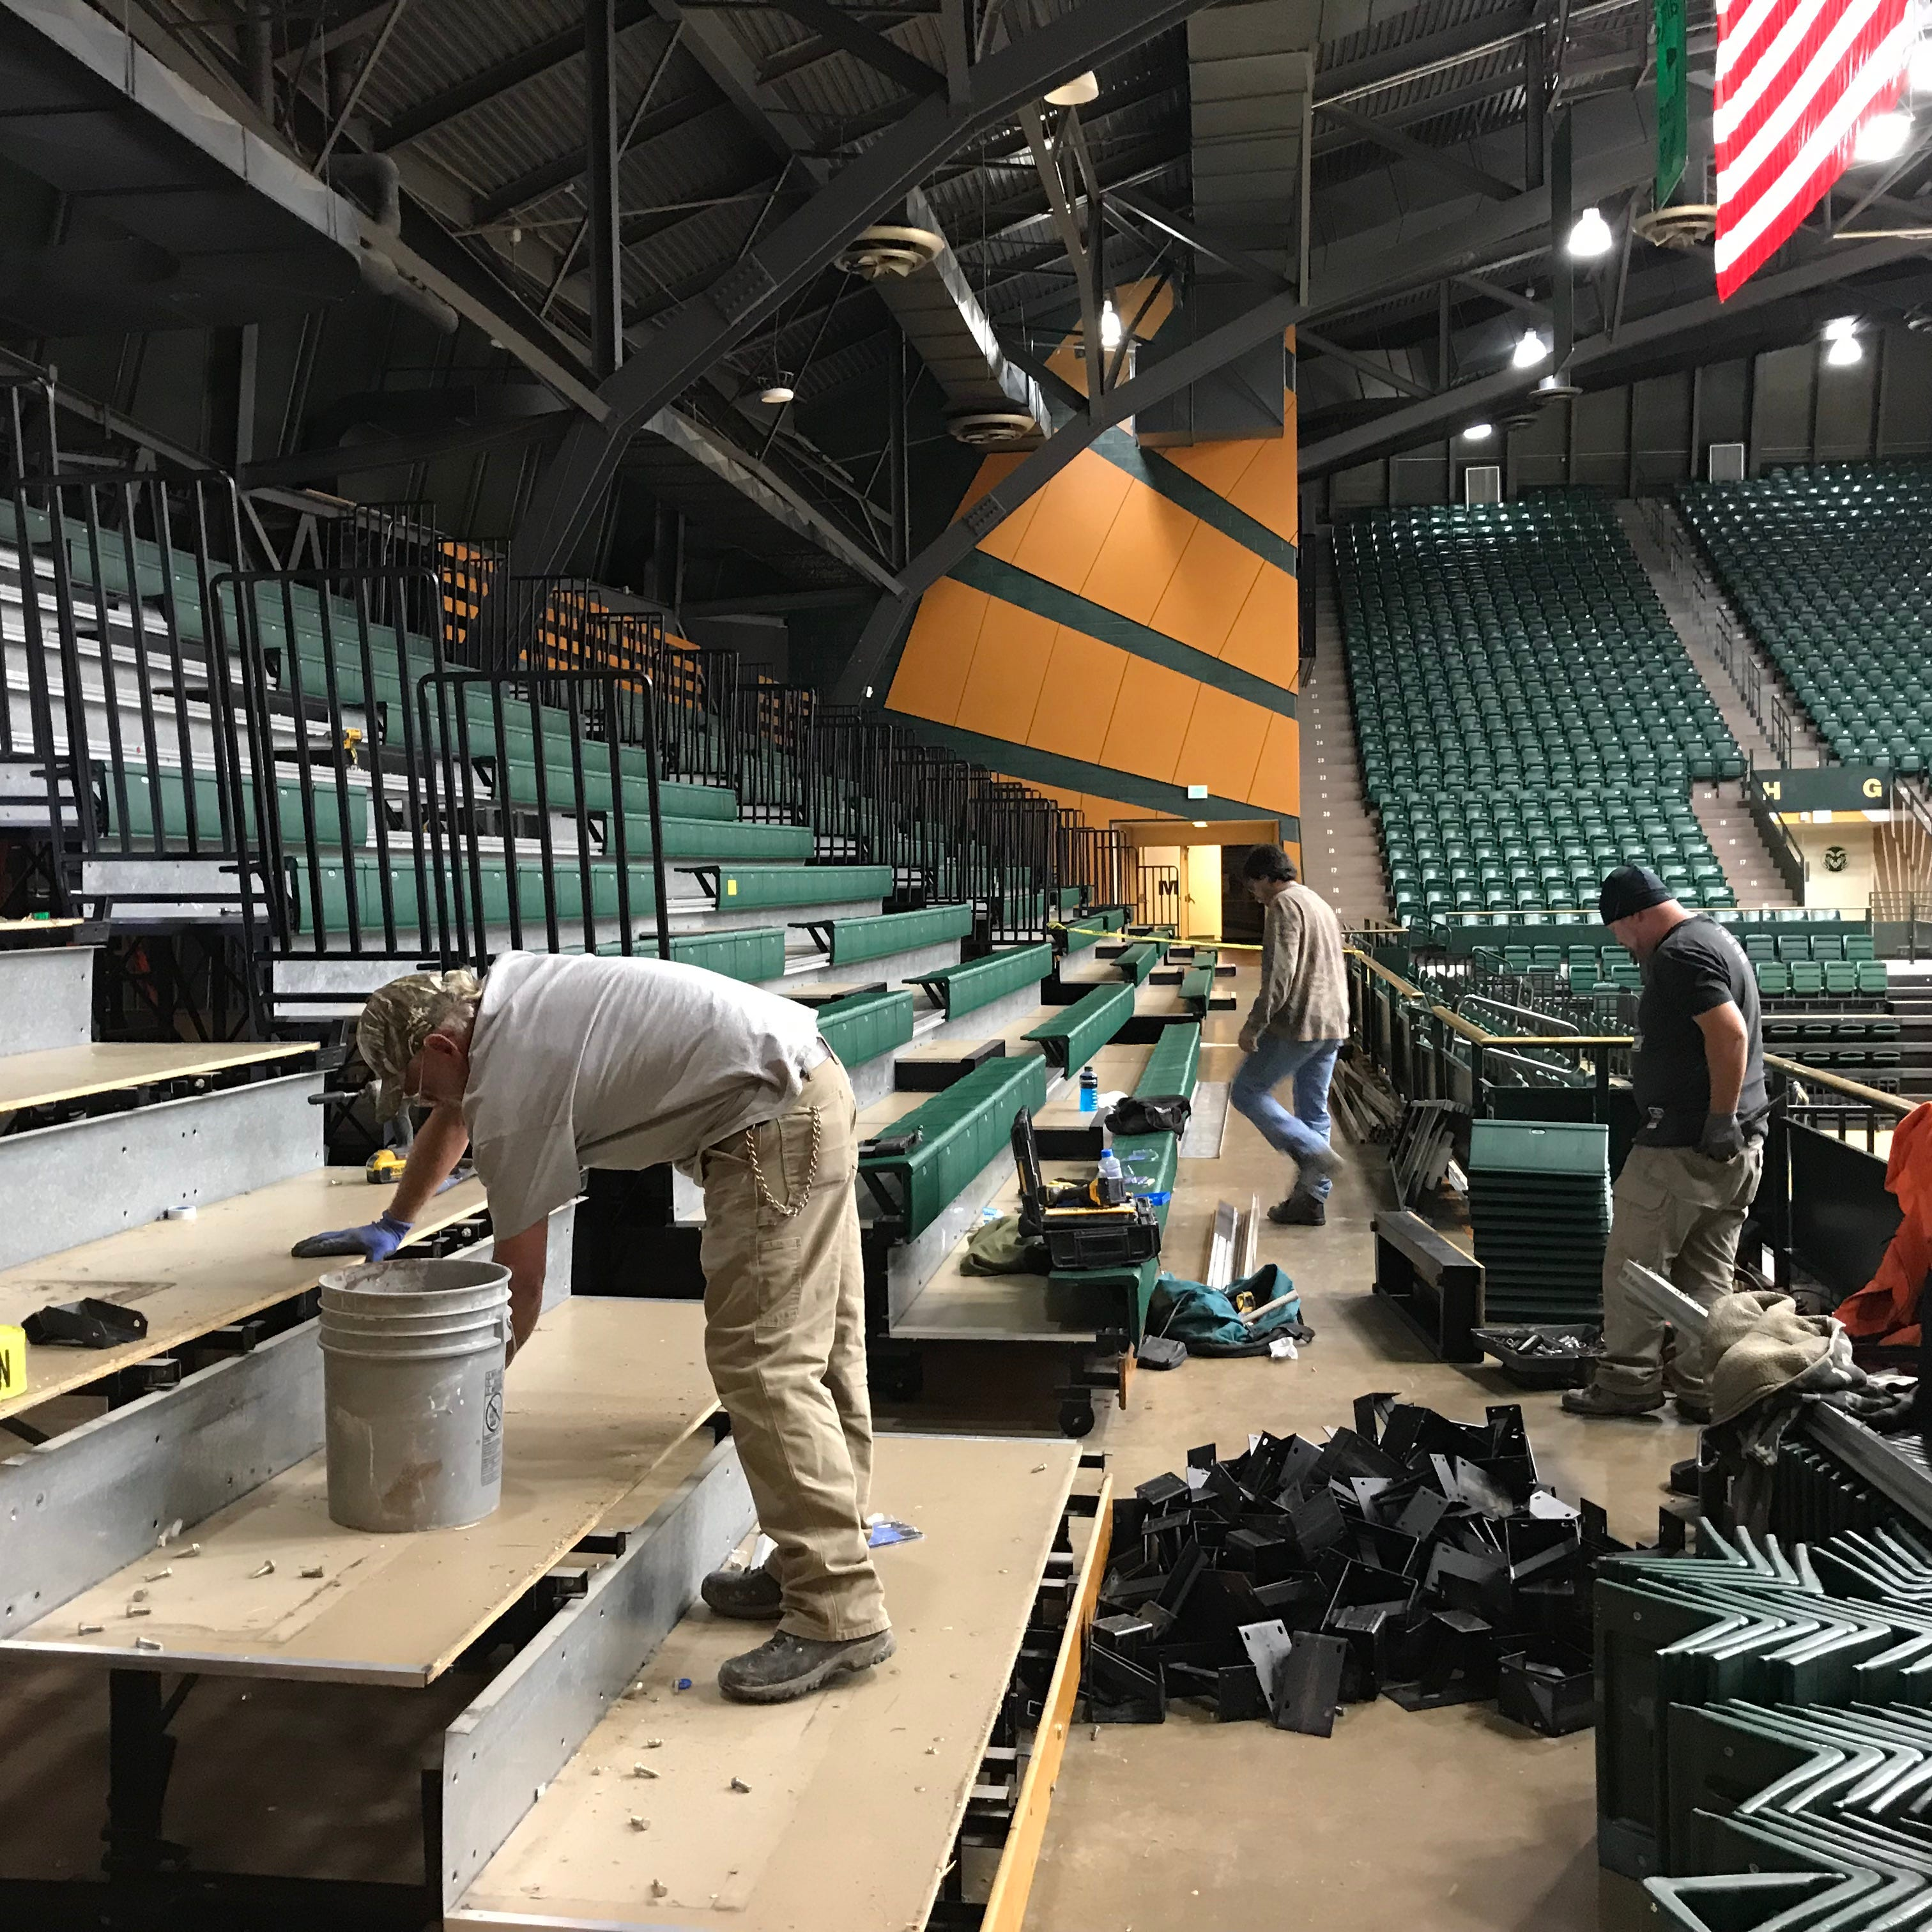 Moby Loft party deck at CSU's basketball arena will accommodate up to 300 fans, AD says